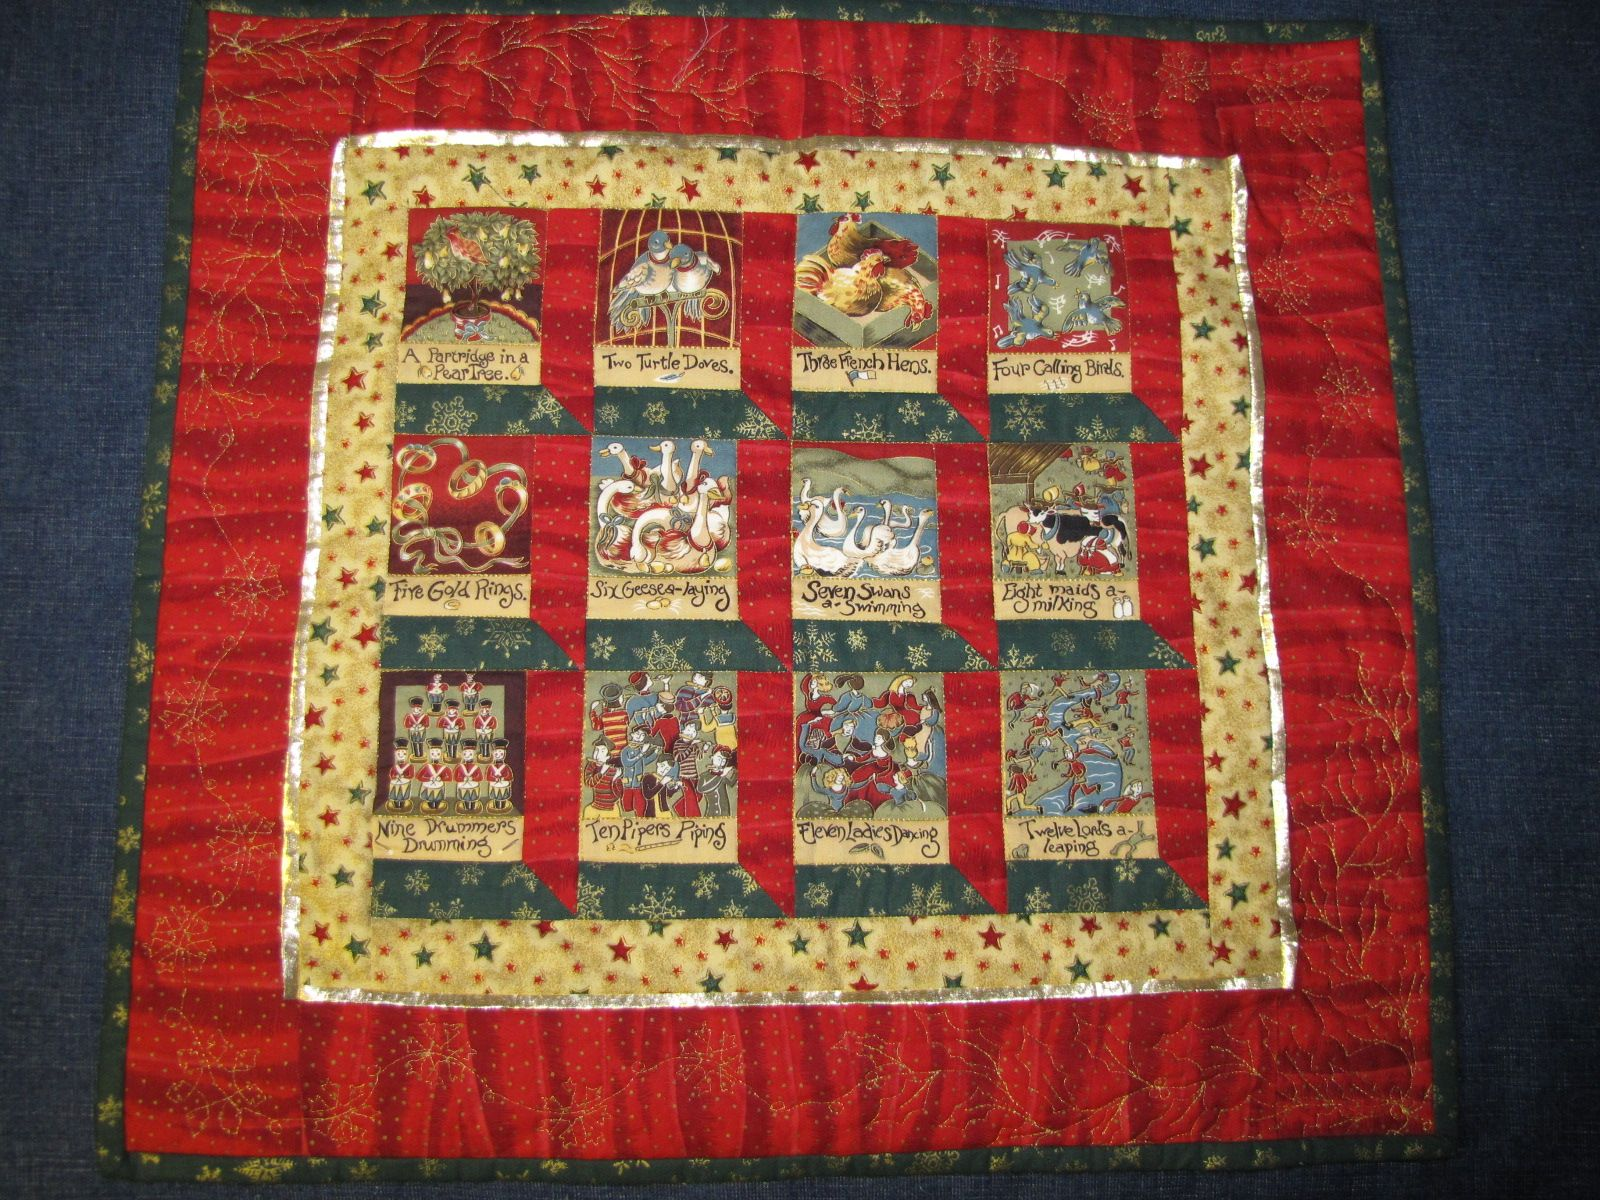 12 Days of Christmas by Maureen Eberhardt Using a Christmas panel, this mini quilt was machine pieced and quilted after attending a workshop on mitering corners.  A gold lame flange or peeper strip was inserted between the two borders.  The outer border was quilted with a holly and snowflake design using gold metallic thread.